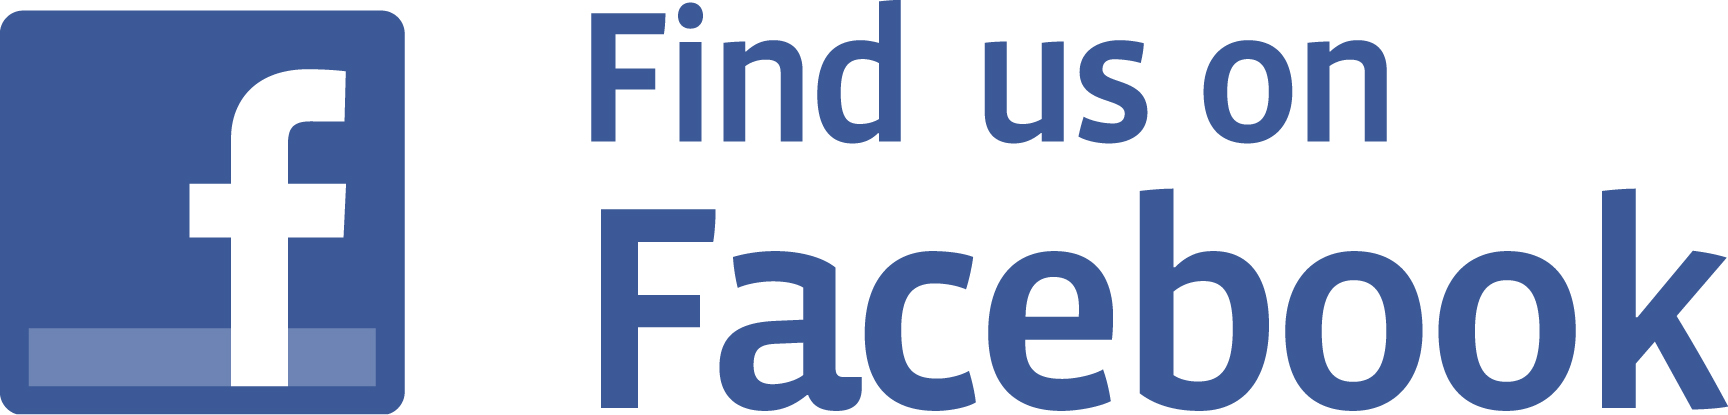 Facebook logotype